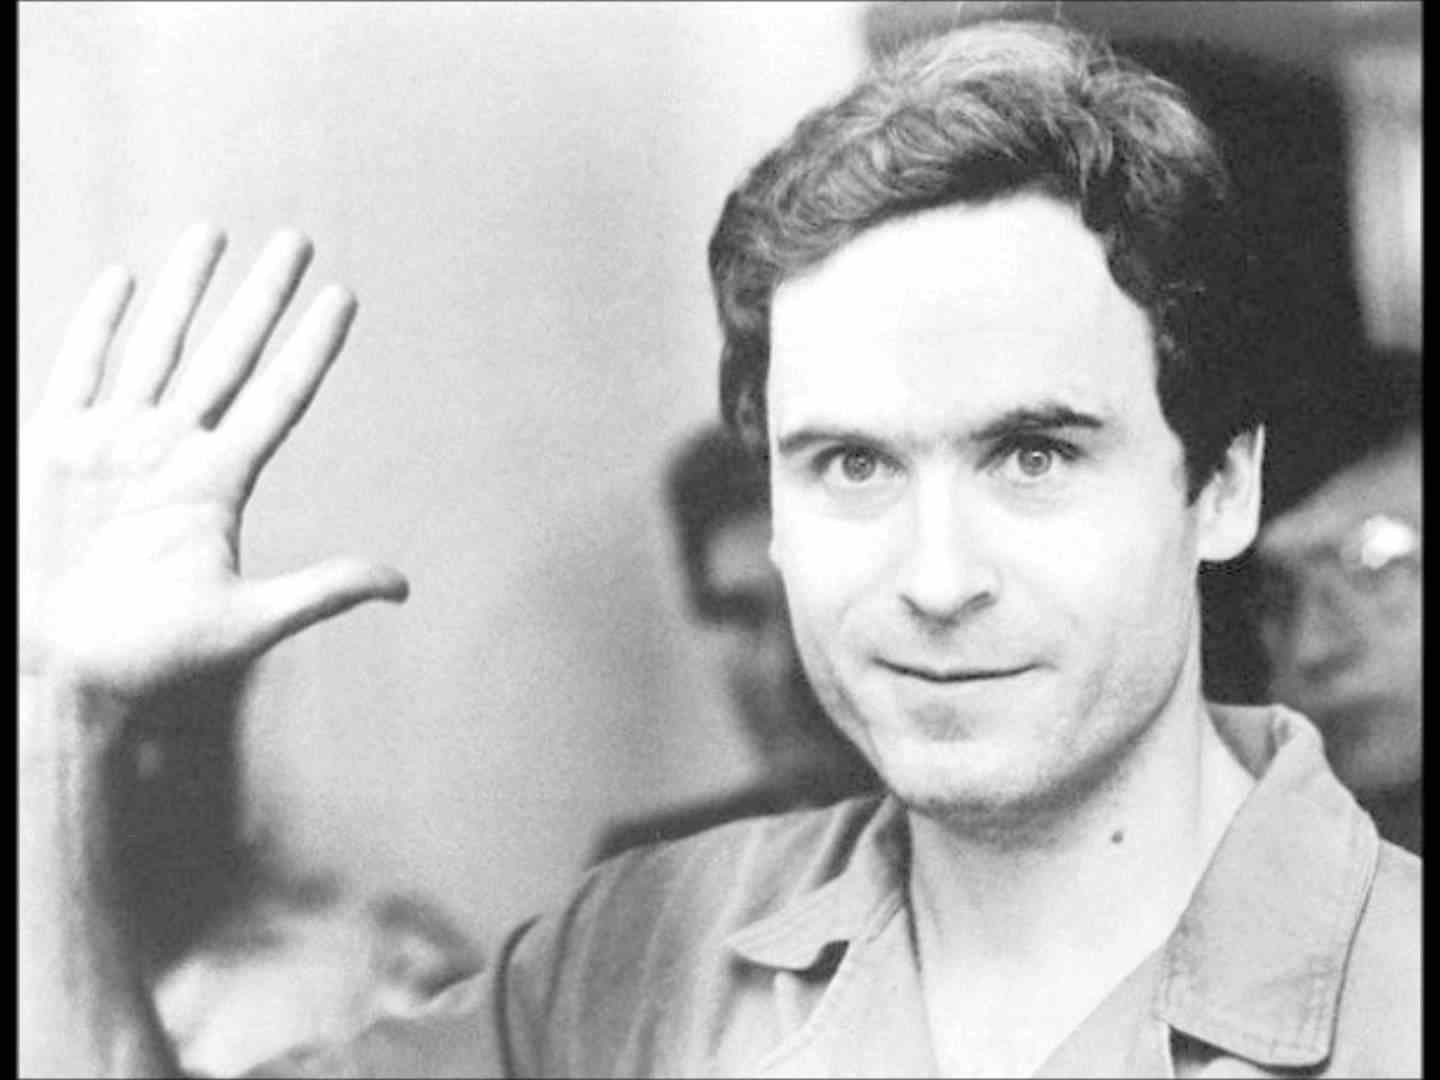 Ted Bundy is one of America's most known serial killers.